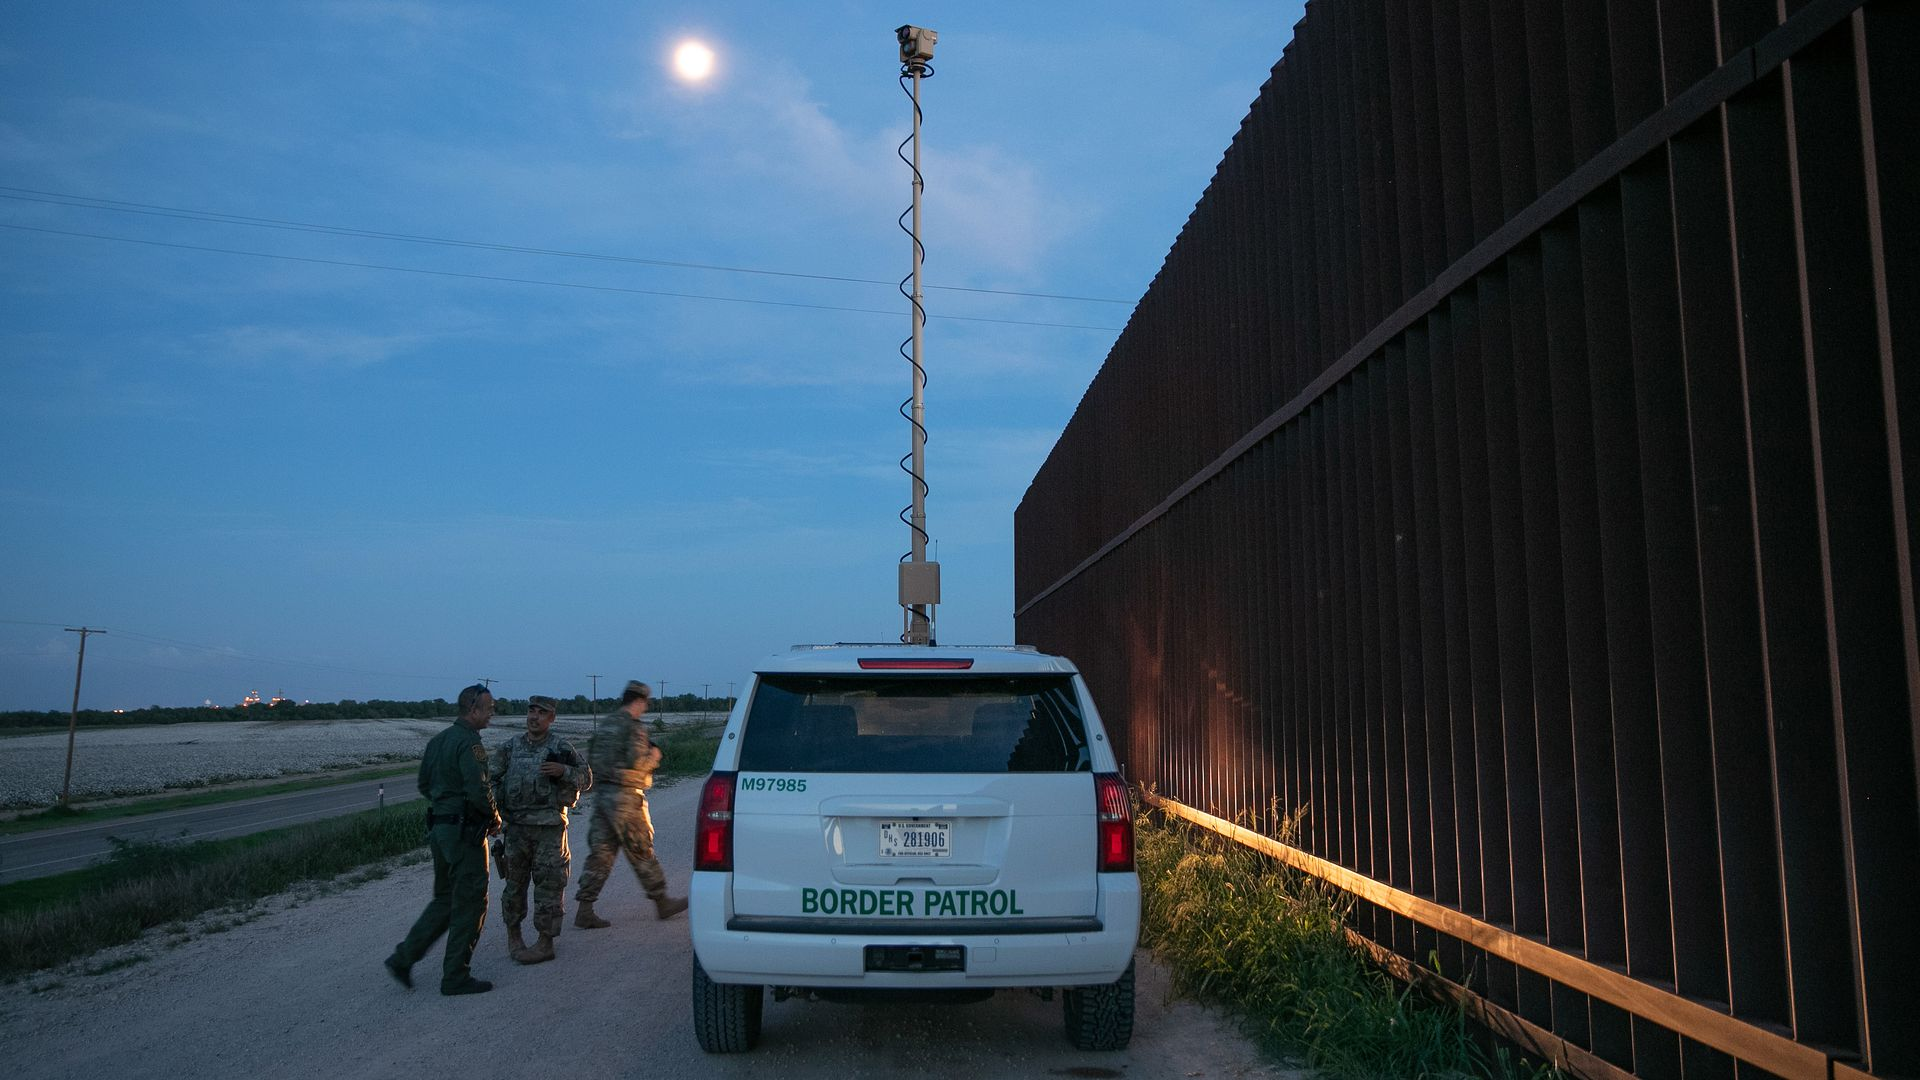 Border patrol car parked by a border fence at dusk.